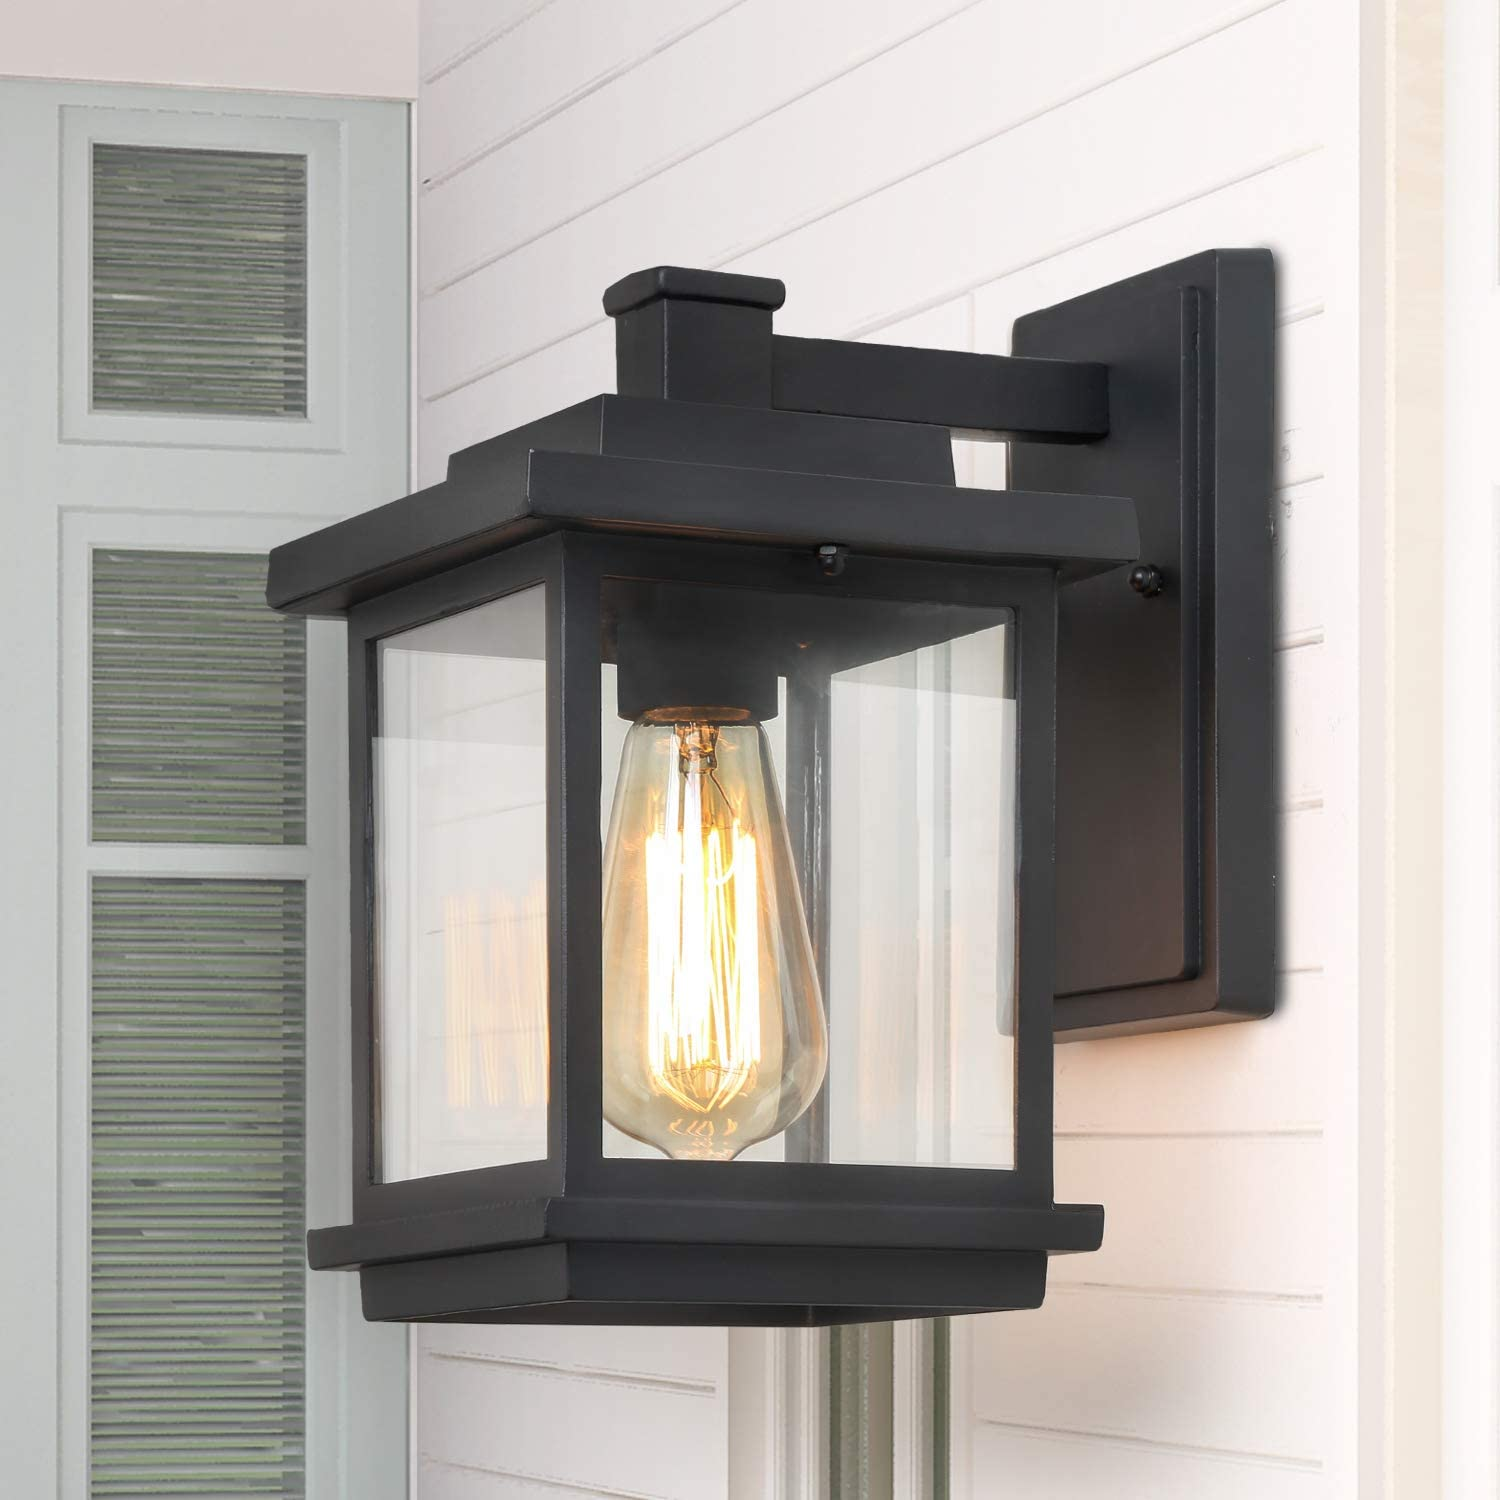 Porch New Shipping Free Shipping Light Fixtures Outdoor Directly managed store 1-Light Exterior Wall